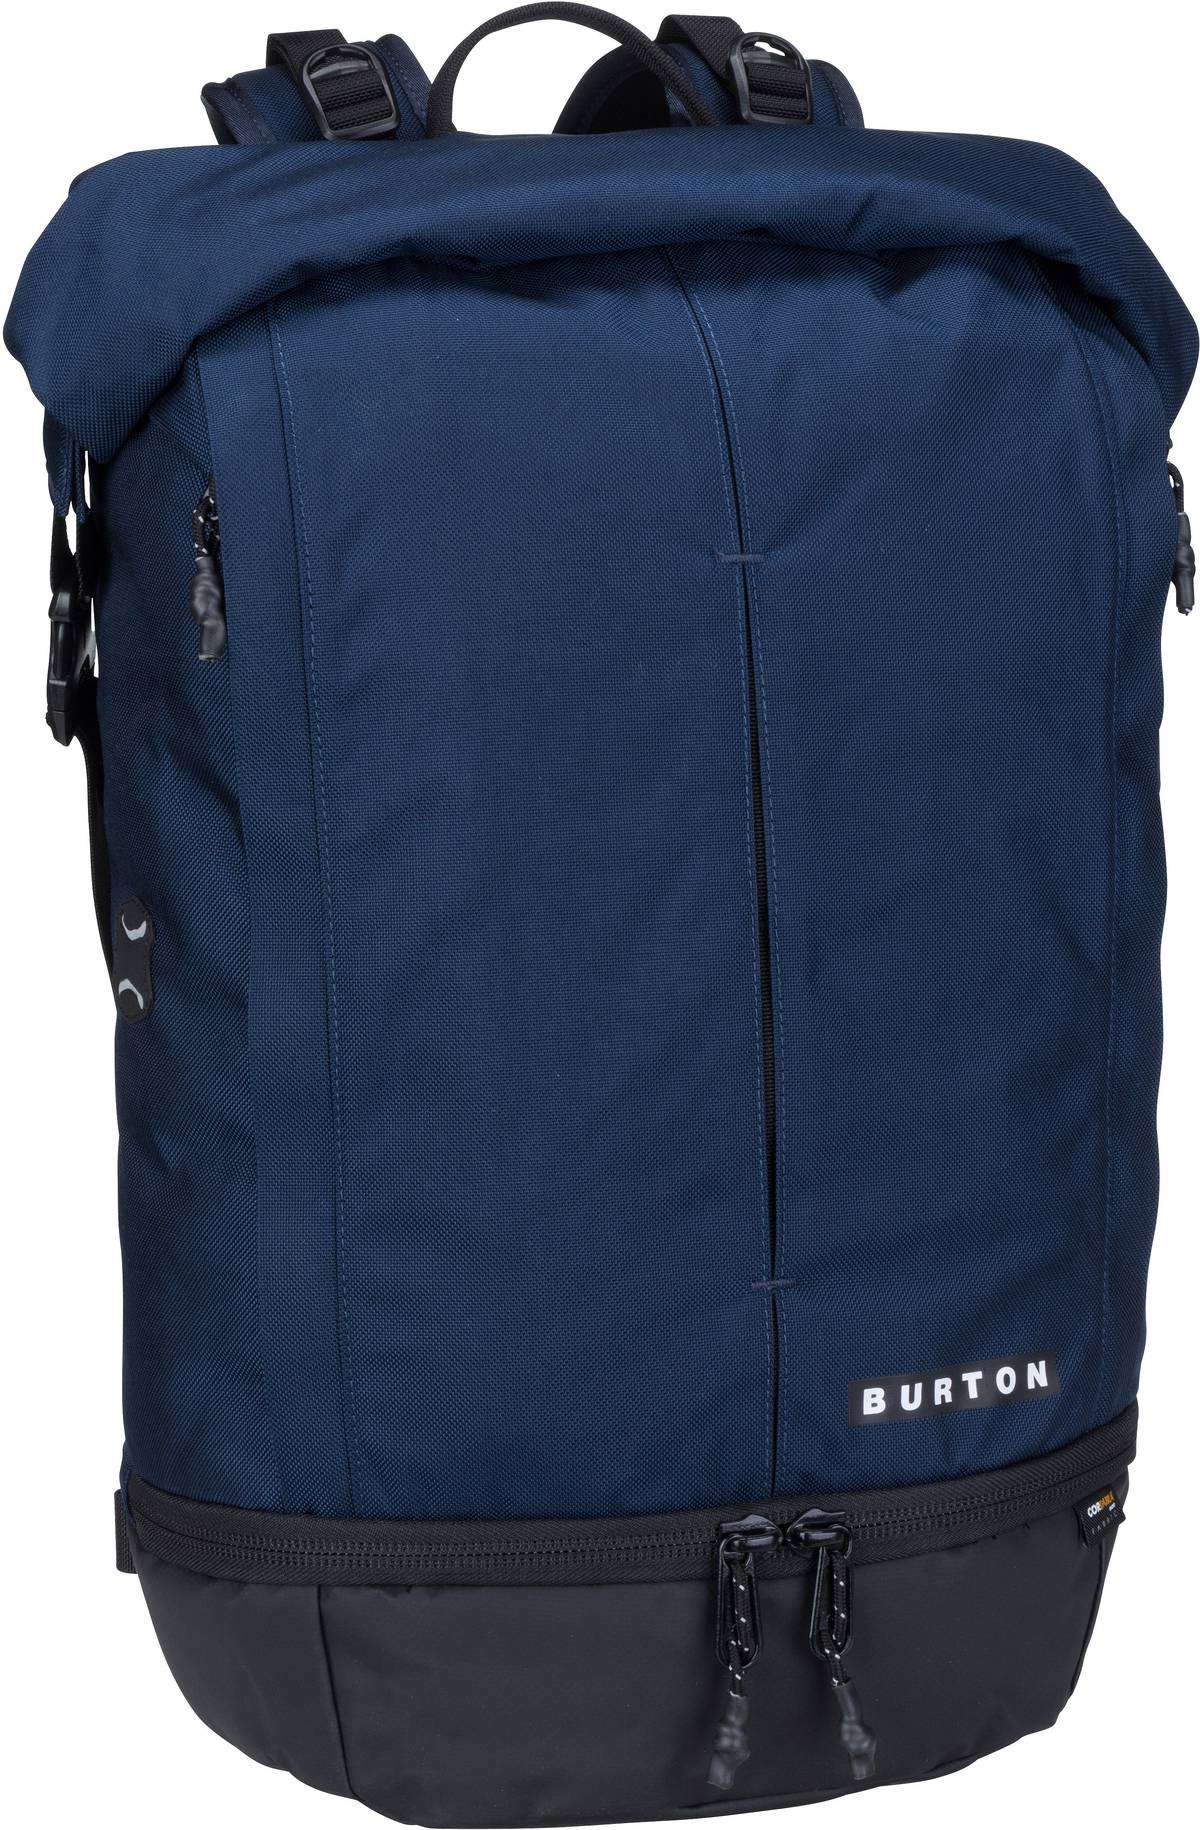 Laptoprucksack Upslope 28L Backpack Dress Blue Ballistic Cordura (28 Liter)